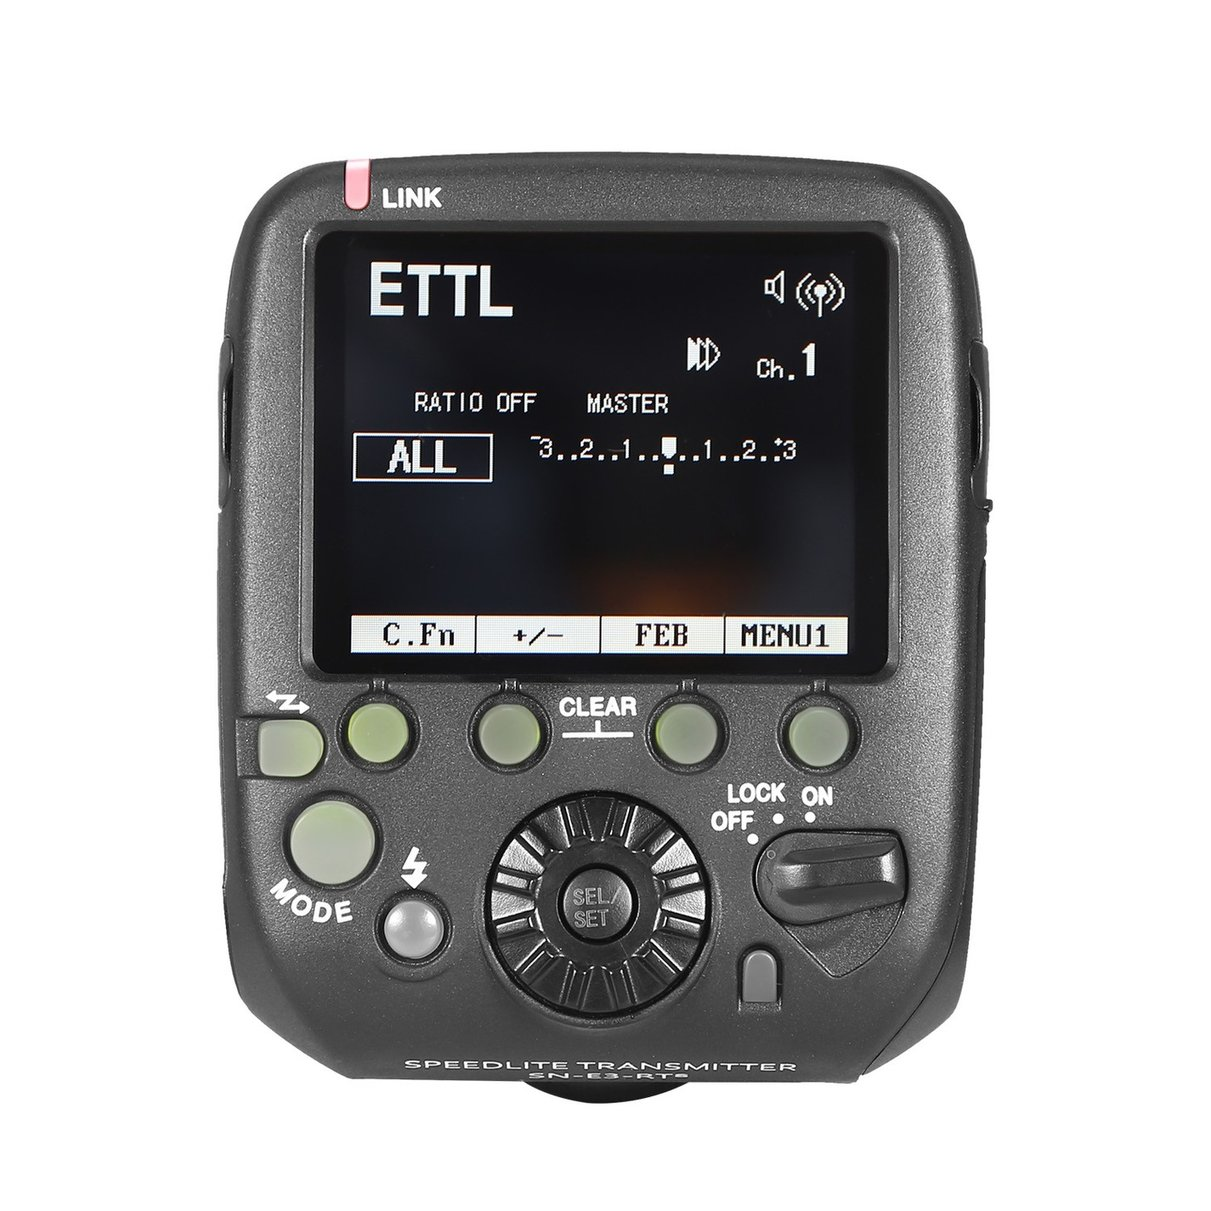 Shanny SN-E3-RTs Transmitter Flash Trigger for Canon 600EX-RT Yongnuo YN600EX-RT SN600C-RT Flash Speedlite As ST-E3-RT YN-E3-RT поливочное оборудование gardena t 100 [08201 29 000 00]